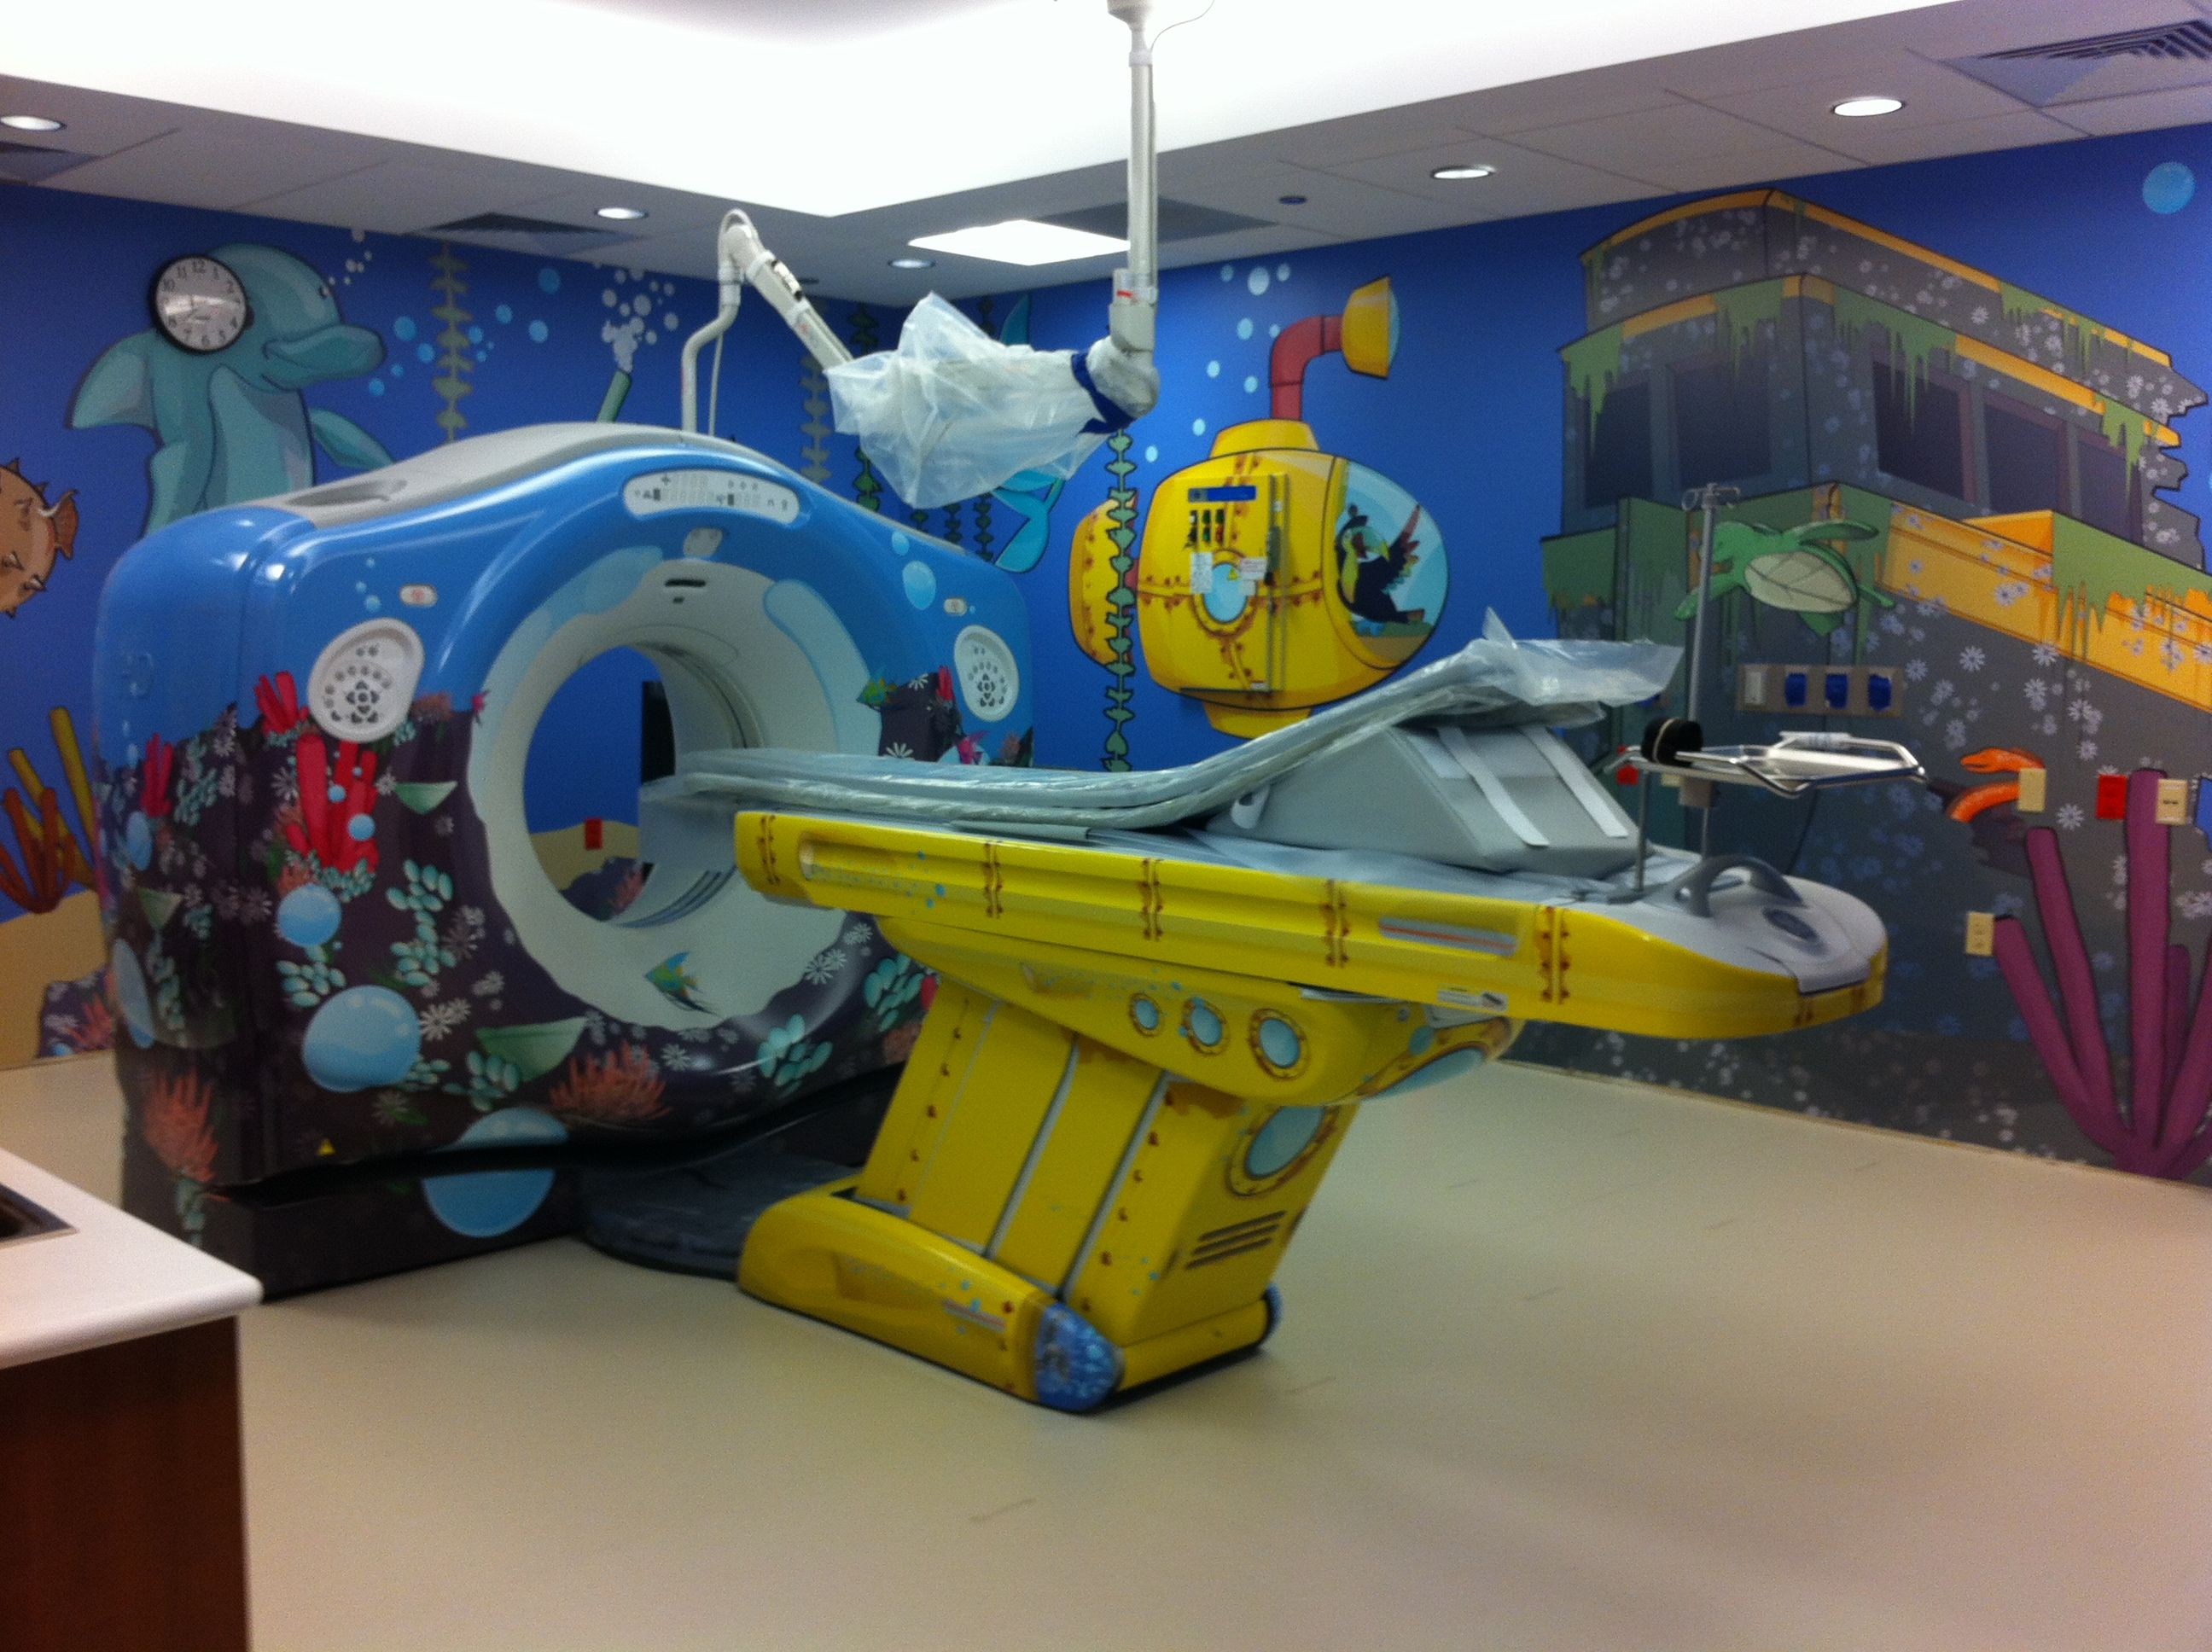 What a great idea for a CT scanner -- bummer, kids only